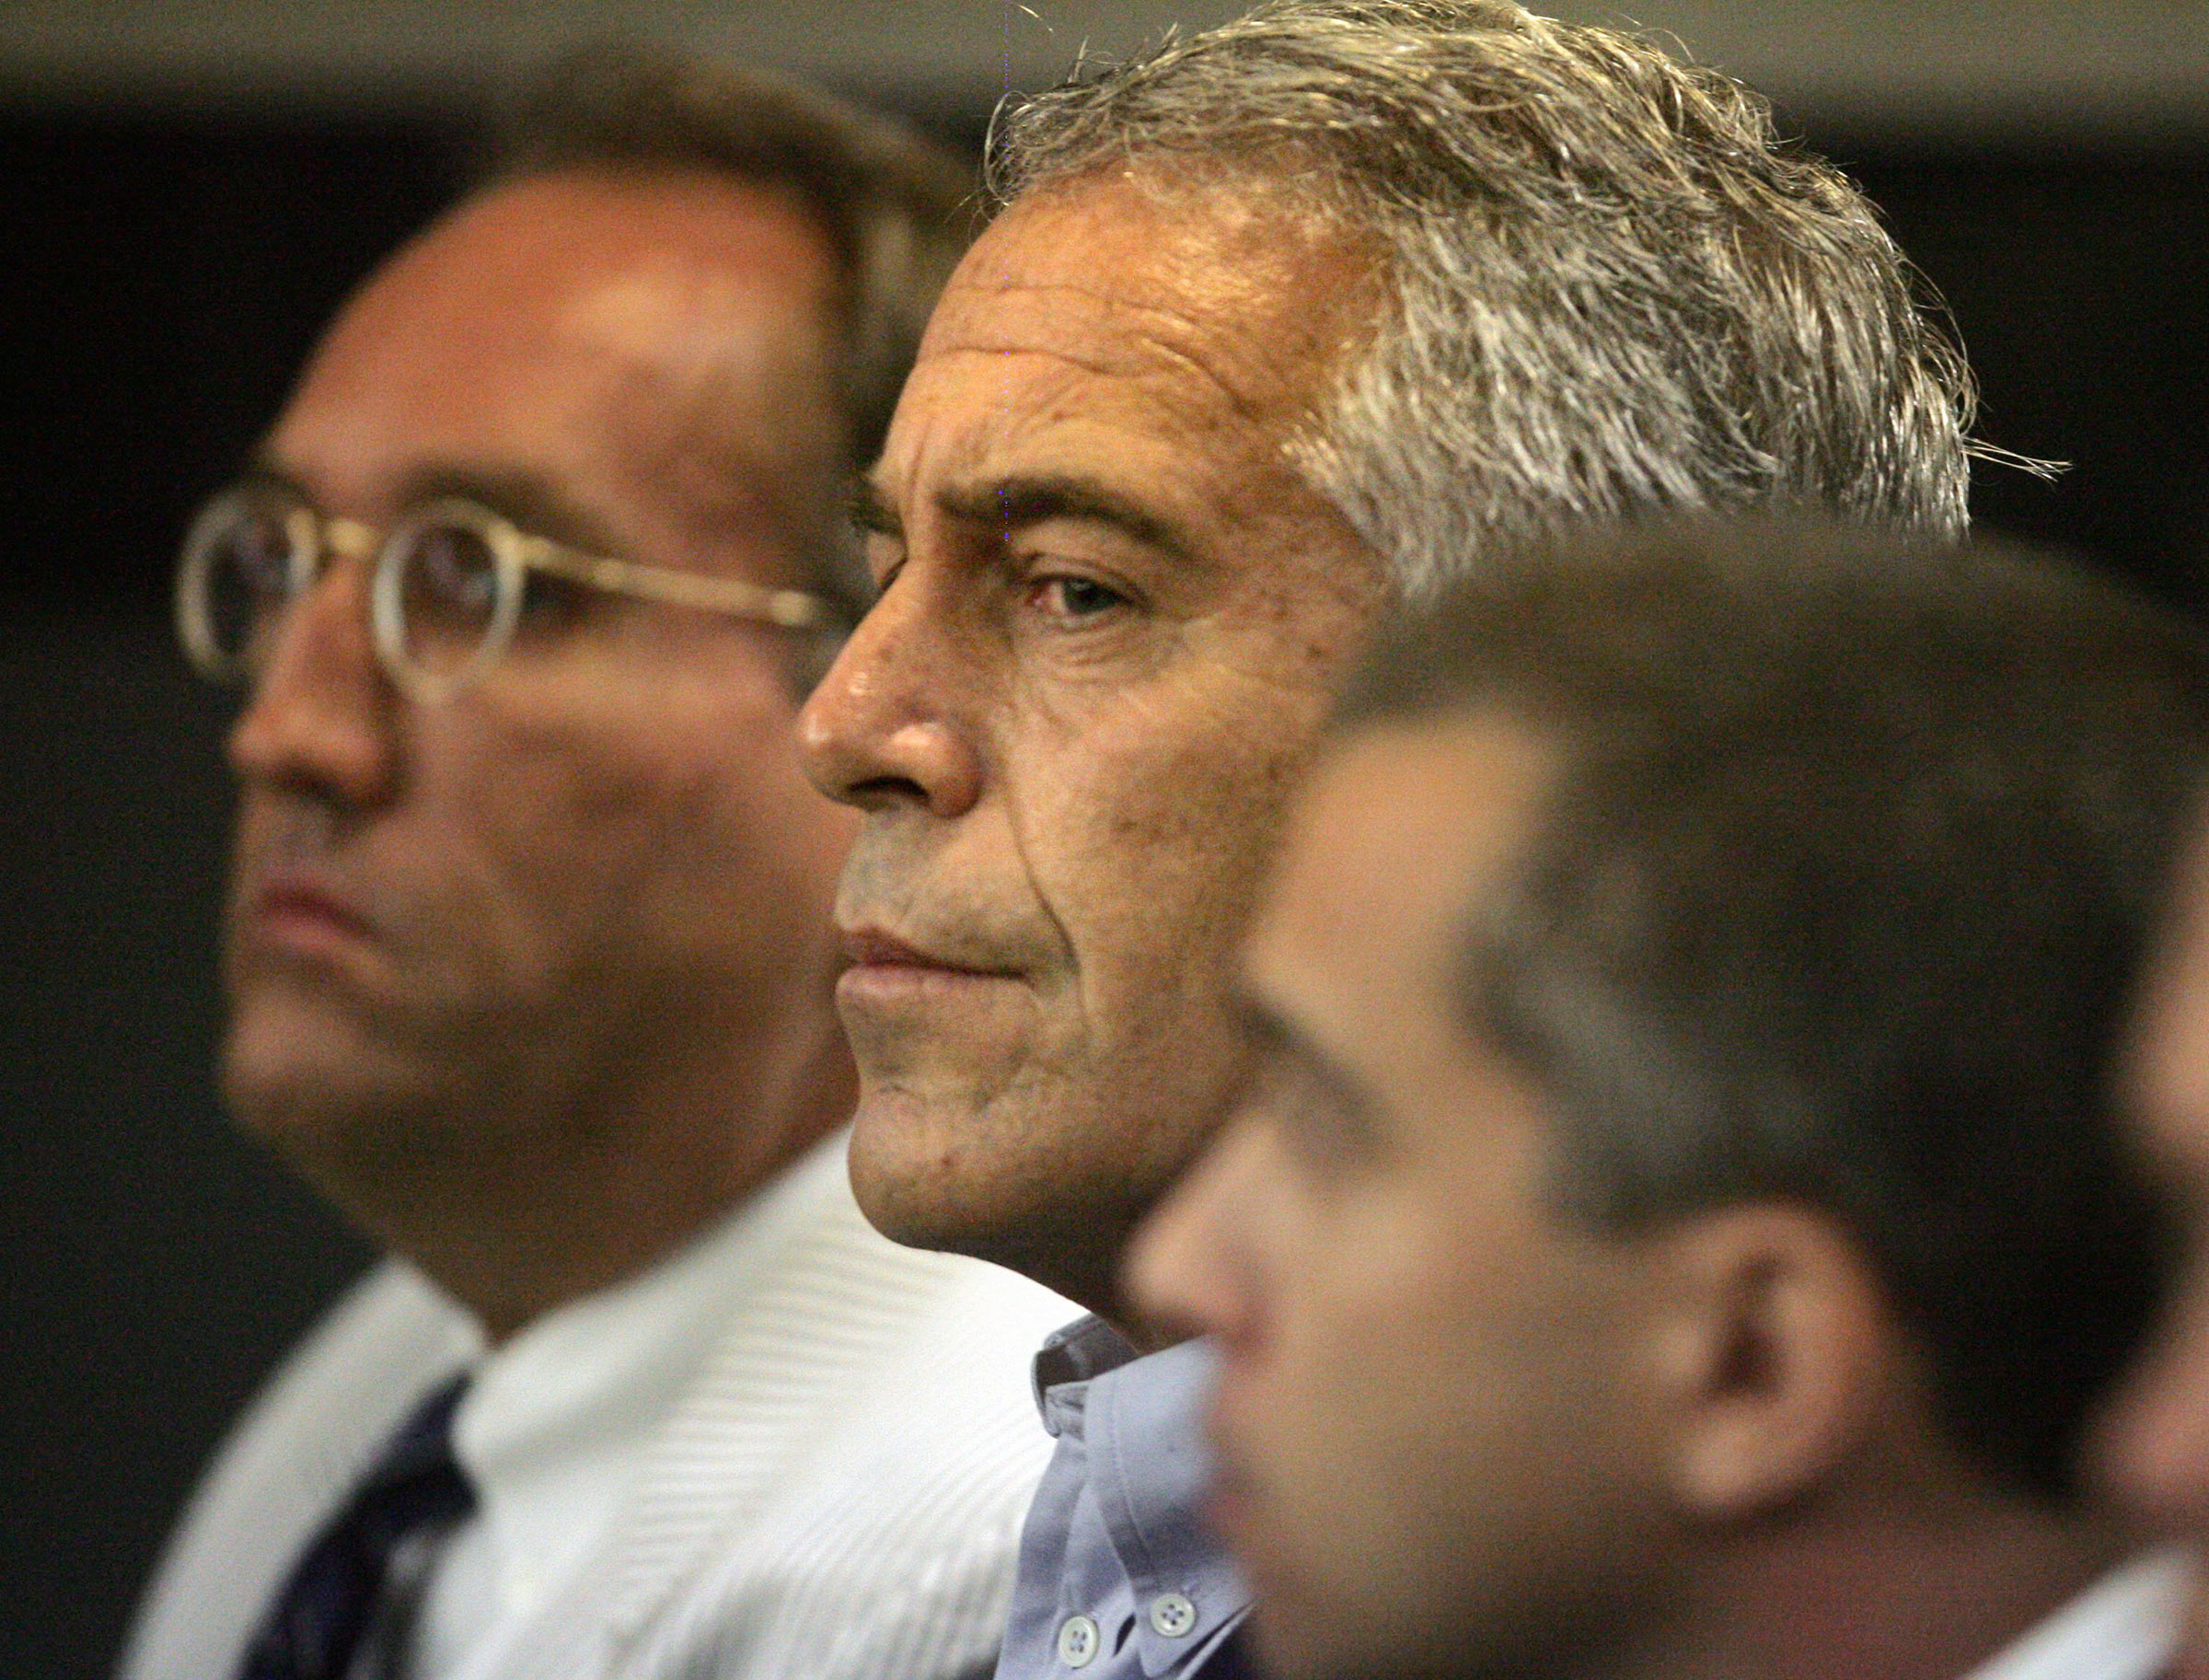 Epstein pleaded guilty in 2008 to solicitation and procuring a person under 18 for prostitution.